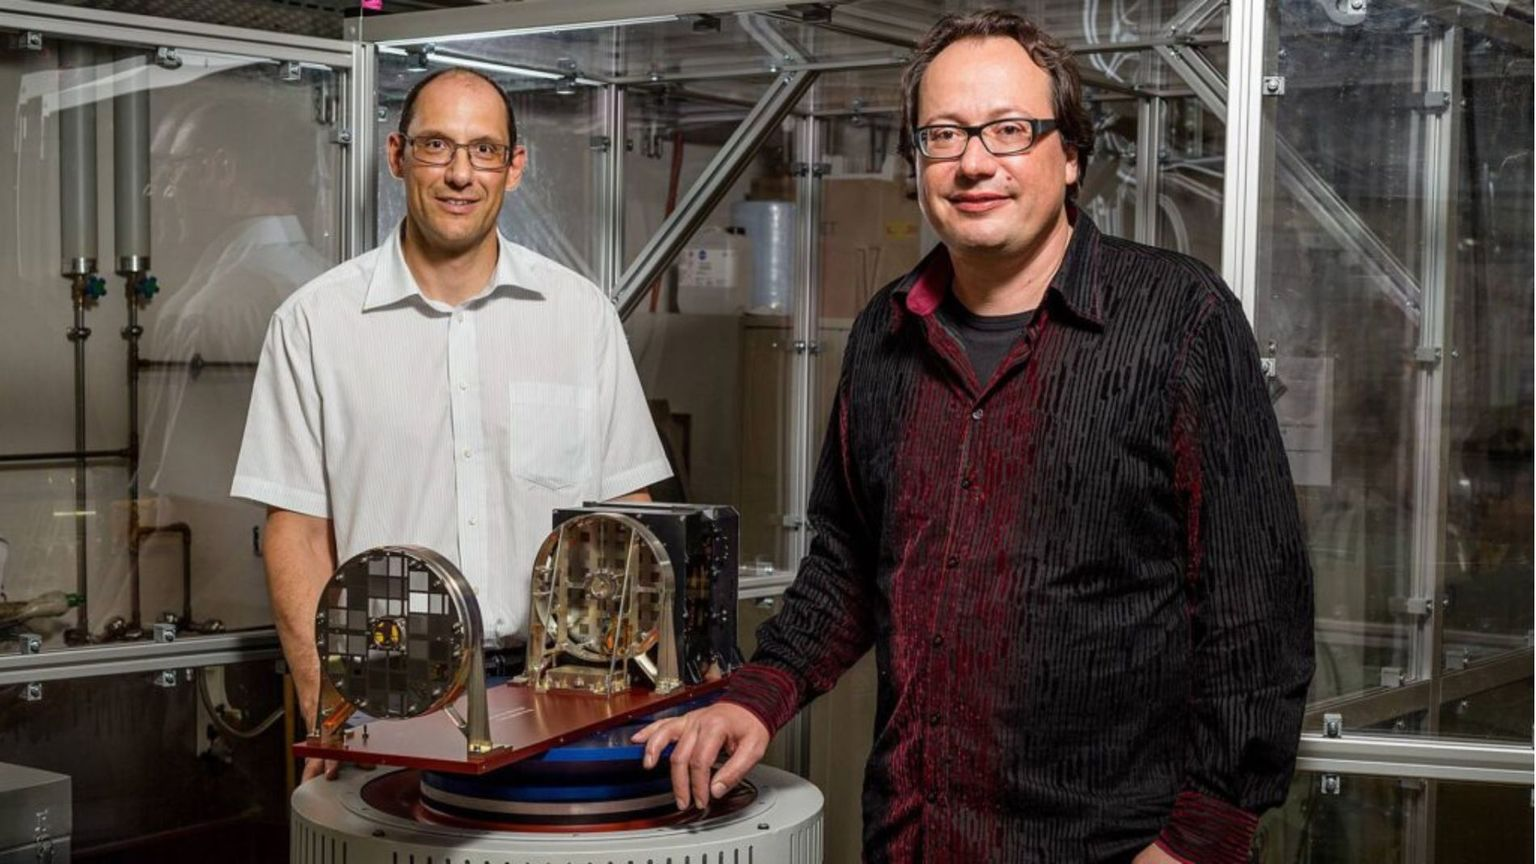 They have developed the STIX X-ray telescope at the FHNW location Brugg-Windisch: Prof. Hans-Peter Grübelbauer (left) and Prof. Säm Krucker.